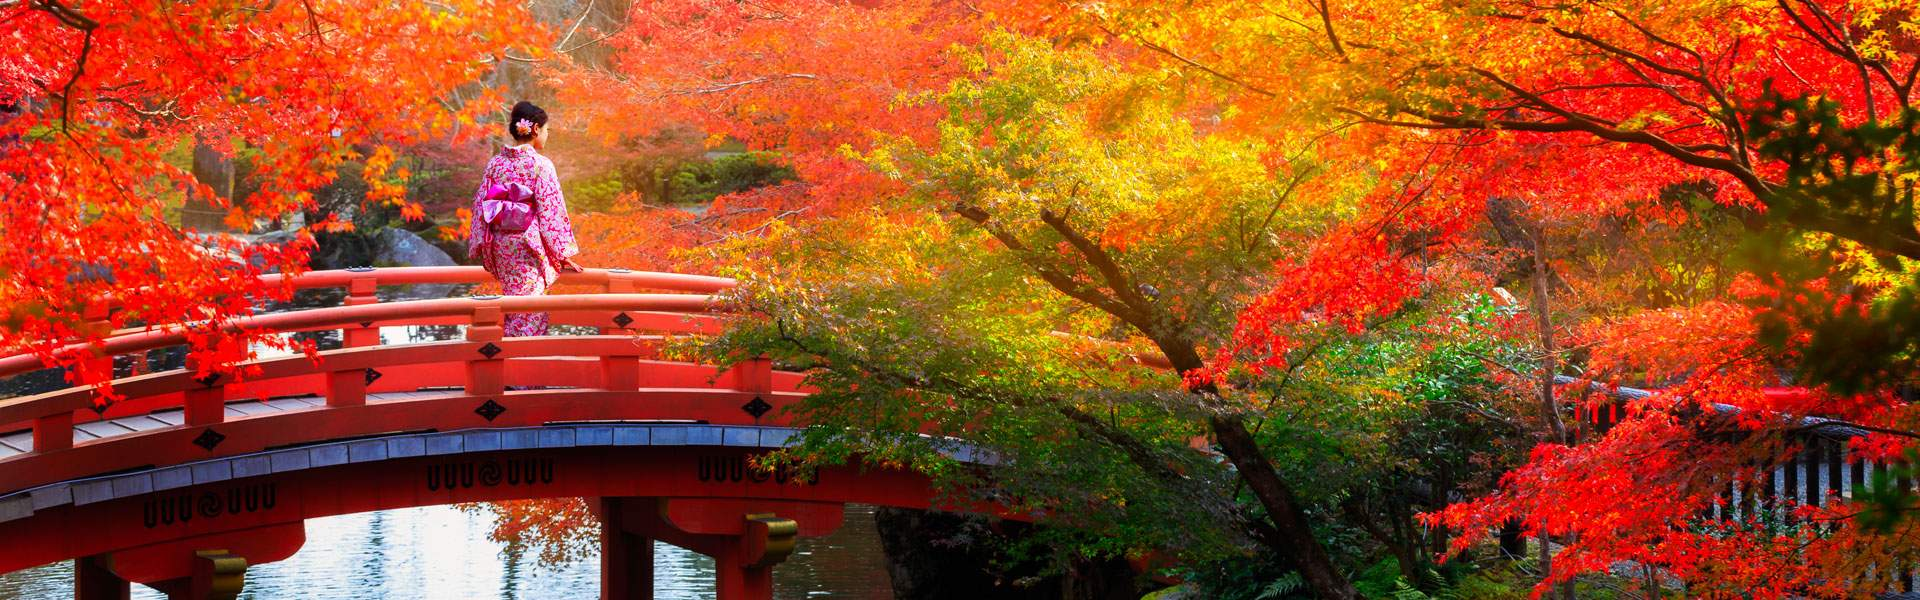 Japan Tours Escorted Private Group Tours Of Japan - Japan tours